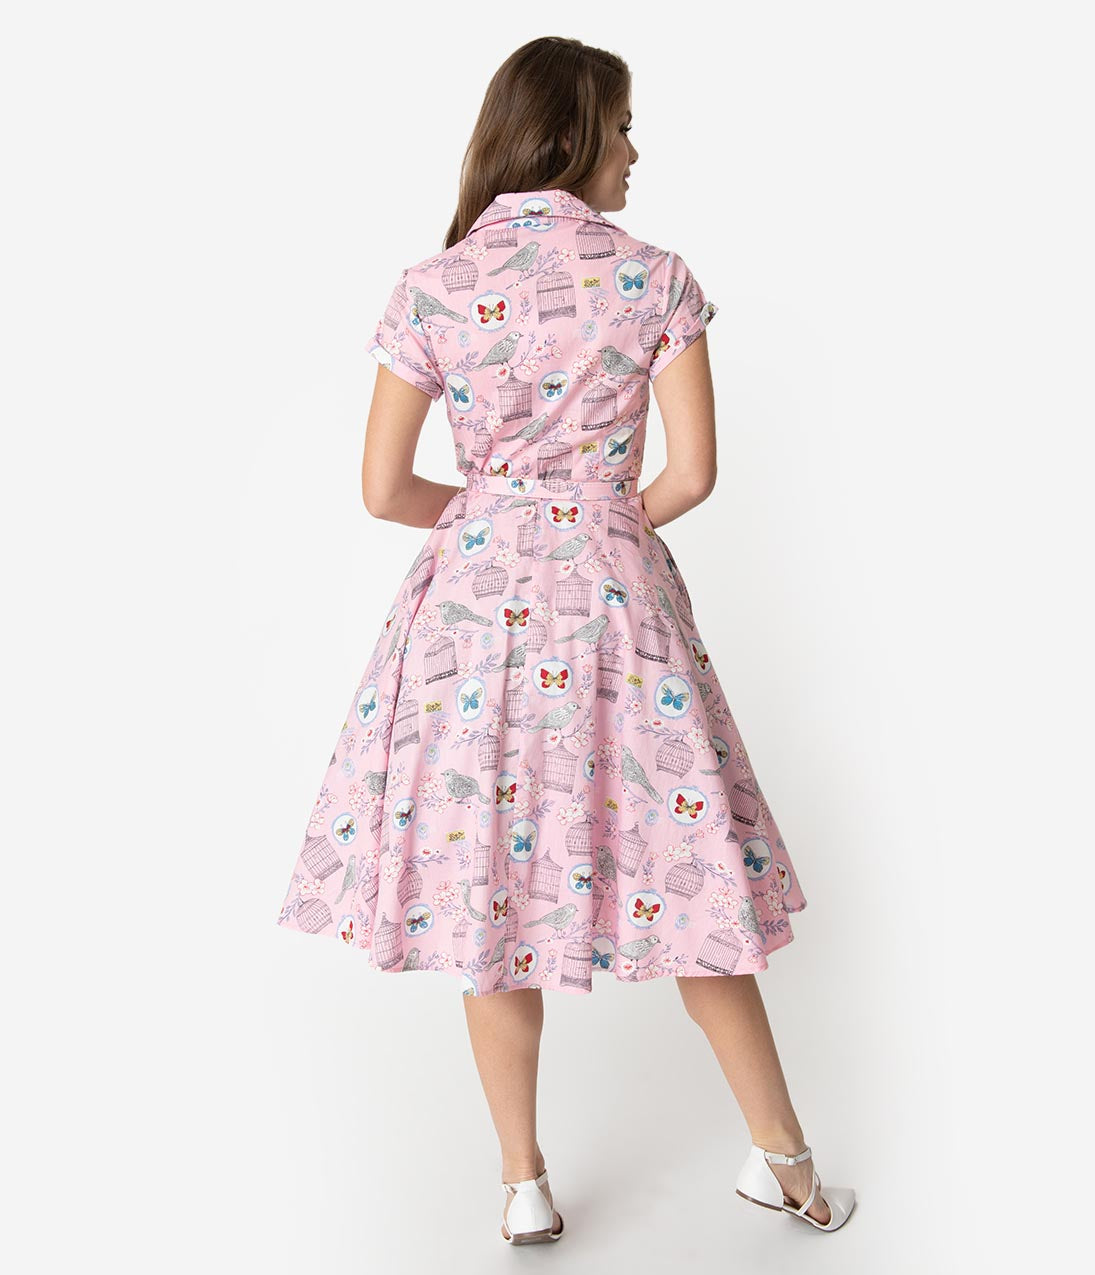 98a6d530d1a Unique Vintage 1950s Style Light Pink Antique Novelty Print Alexis Swing  Dress